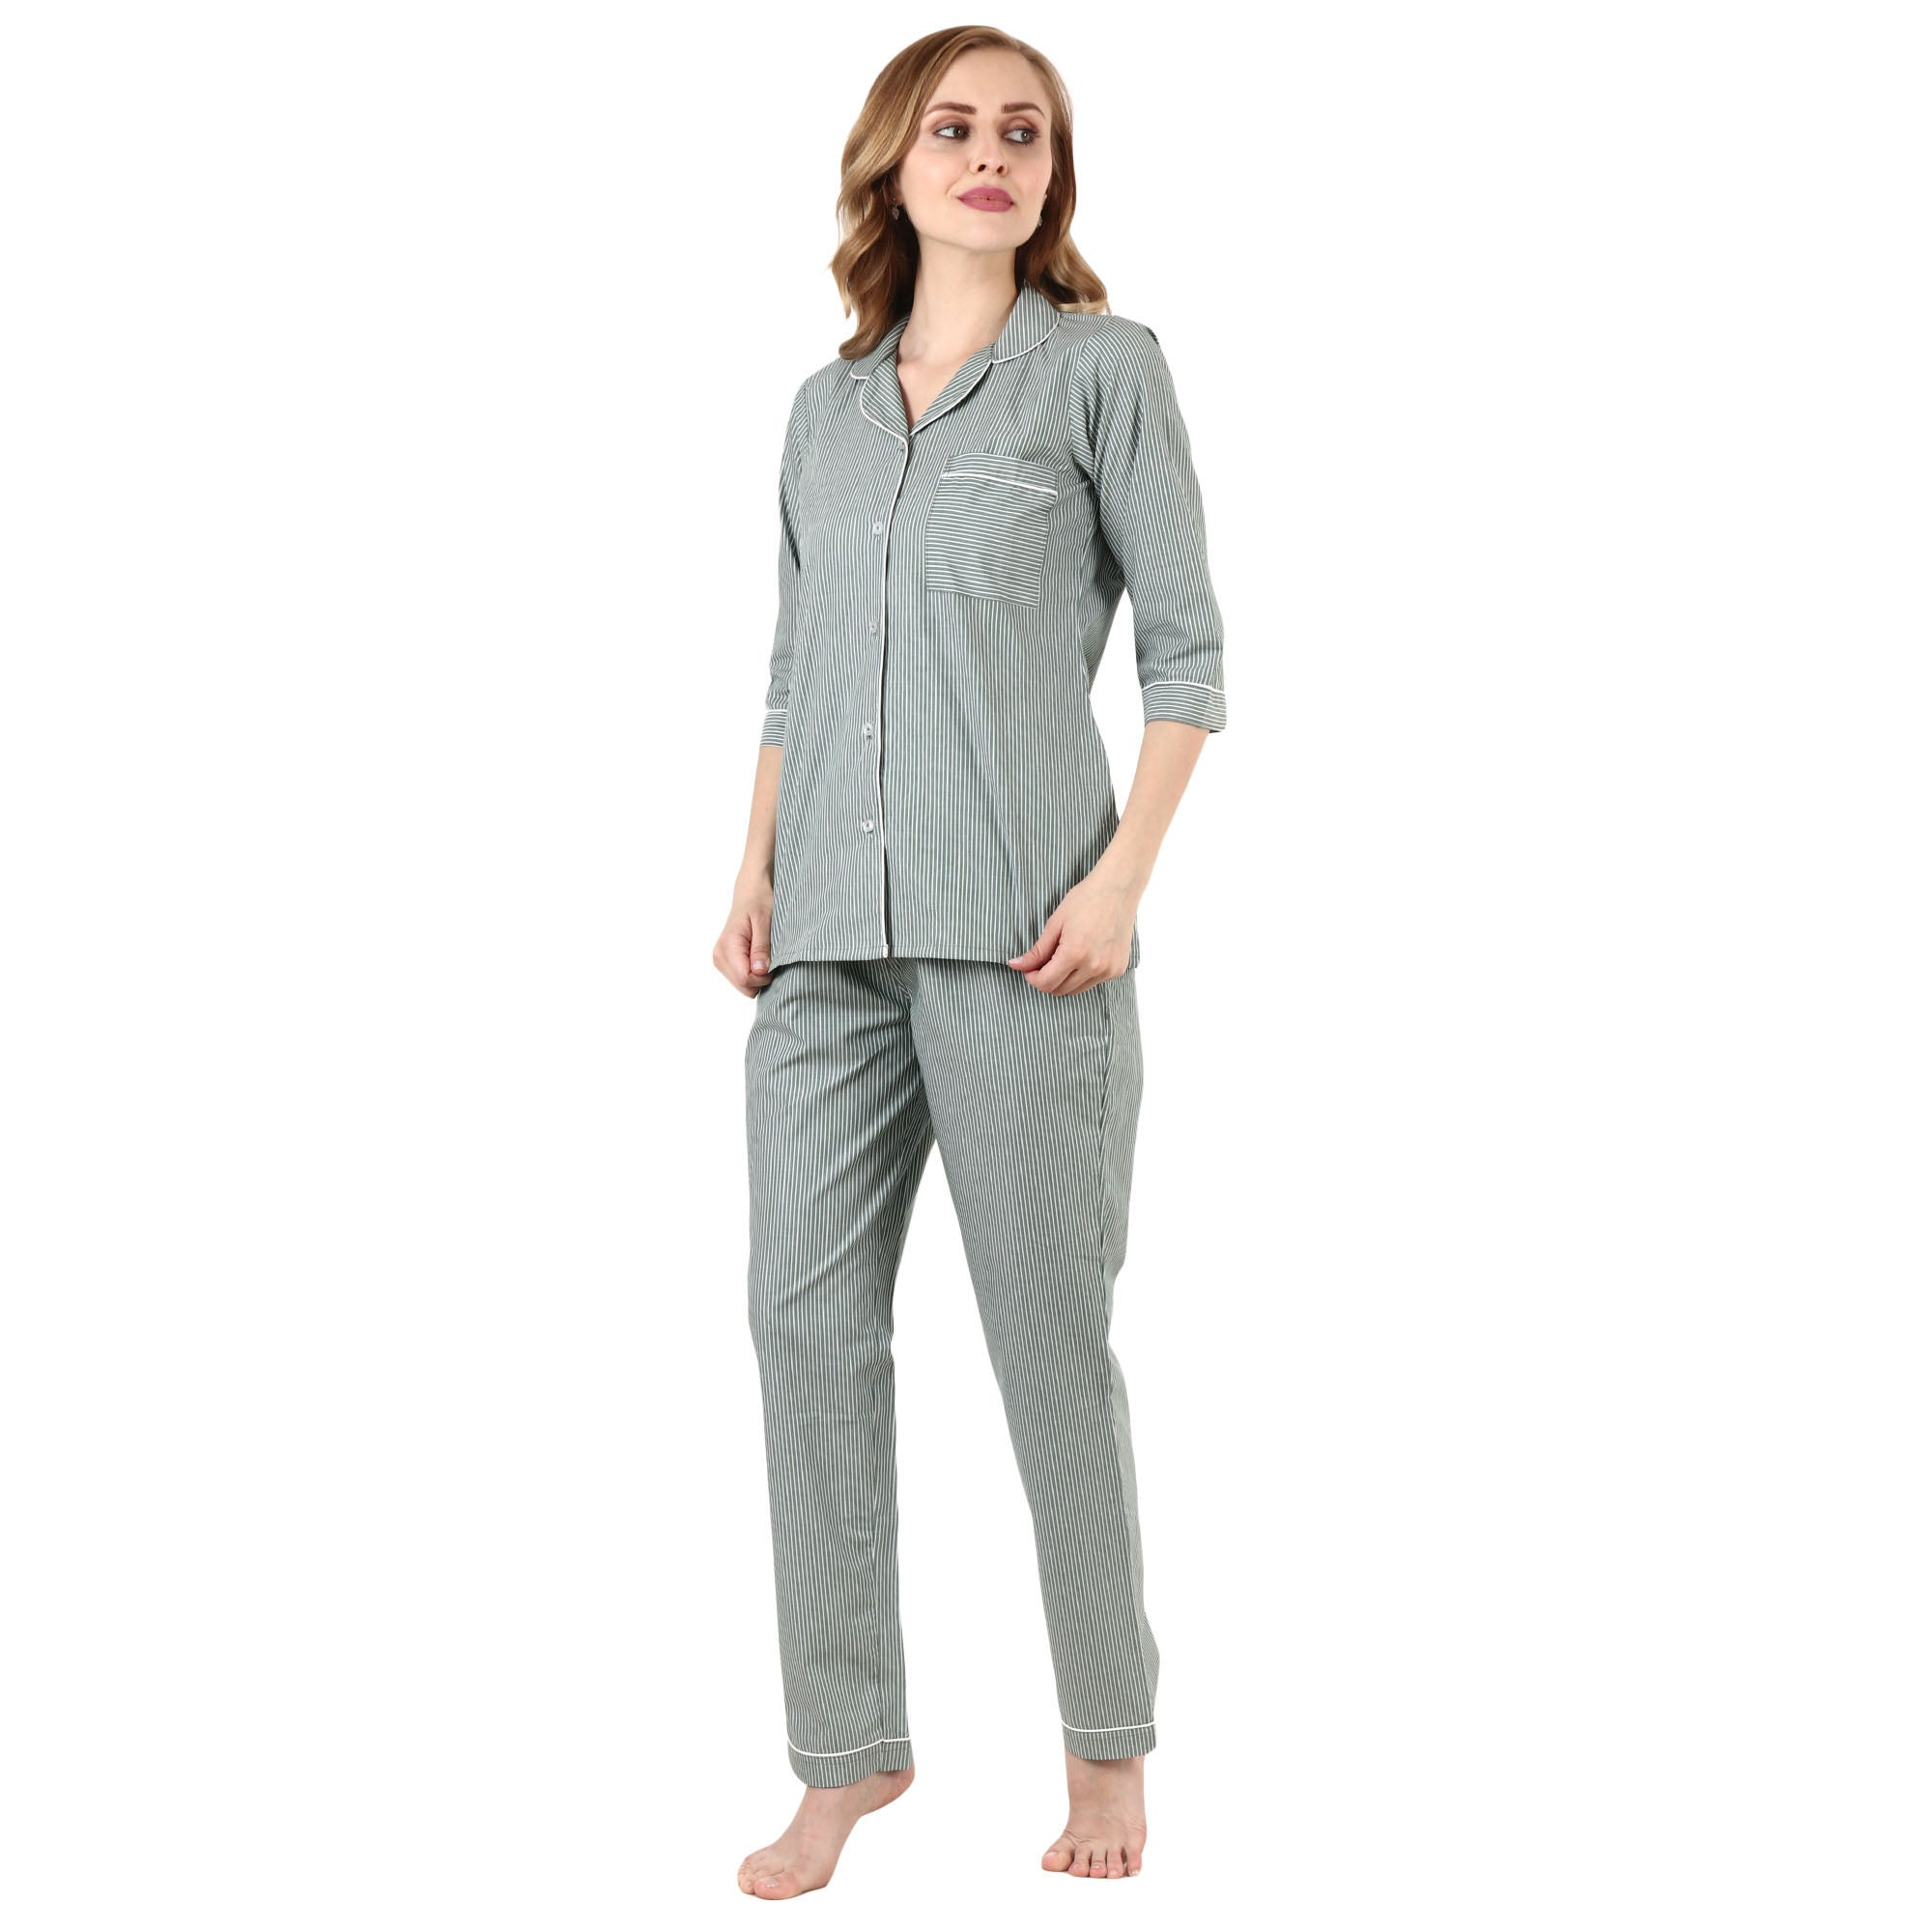 all size, all sizes night suits, apella, best online store, contrast, cotton night suit, green, lounge wear suits, nigt suits online, notched collar, plus size, plus size night suits, poly co